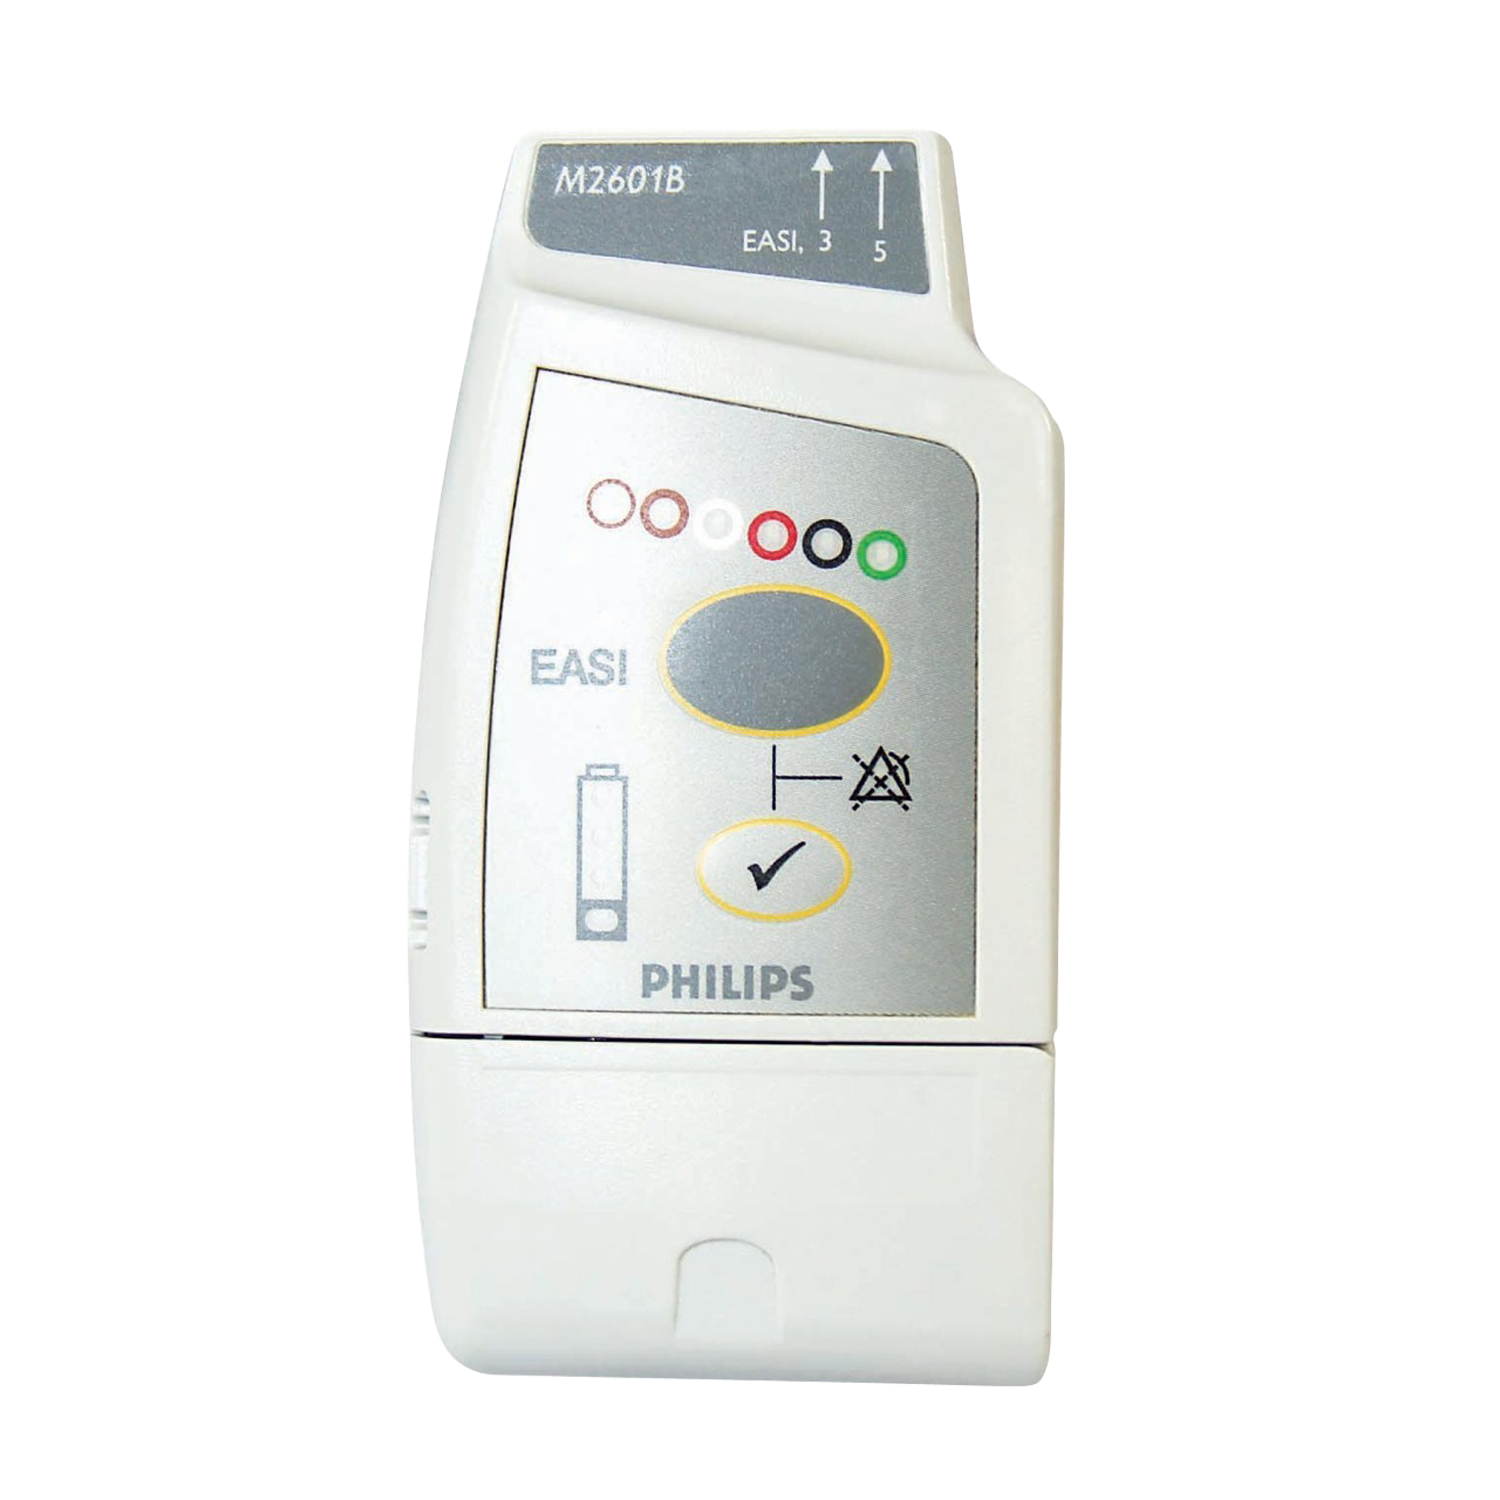 Philips M2601B Telemetry Transmitter